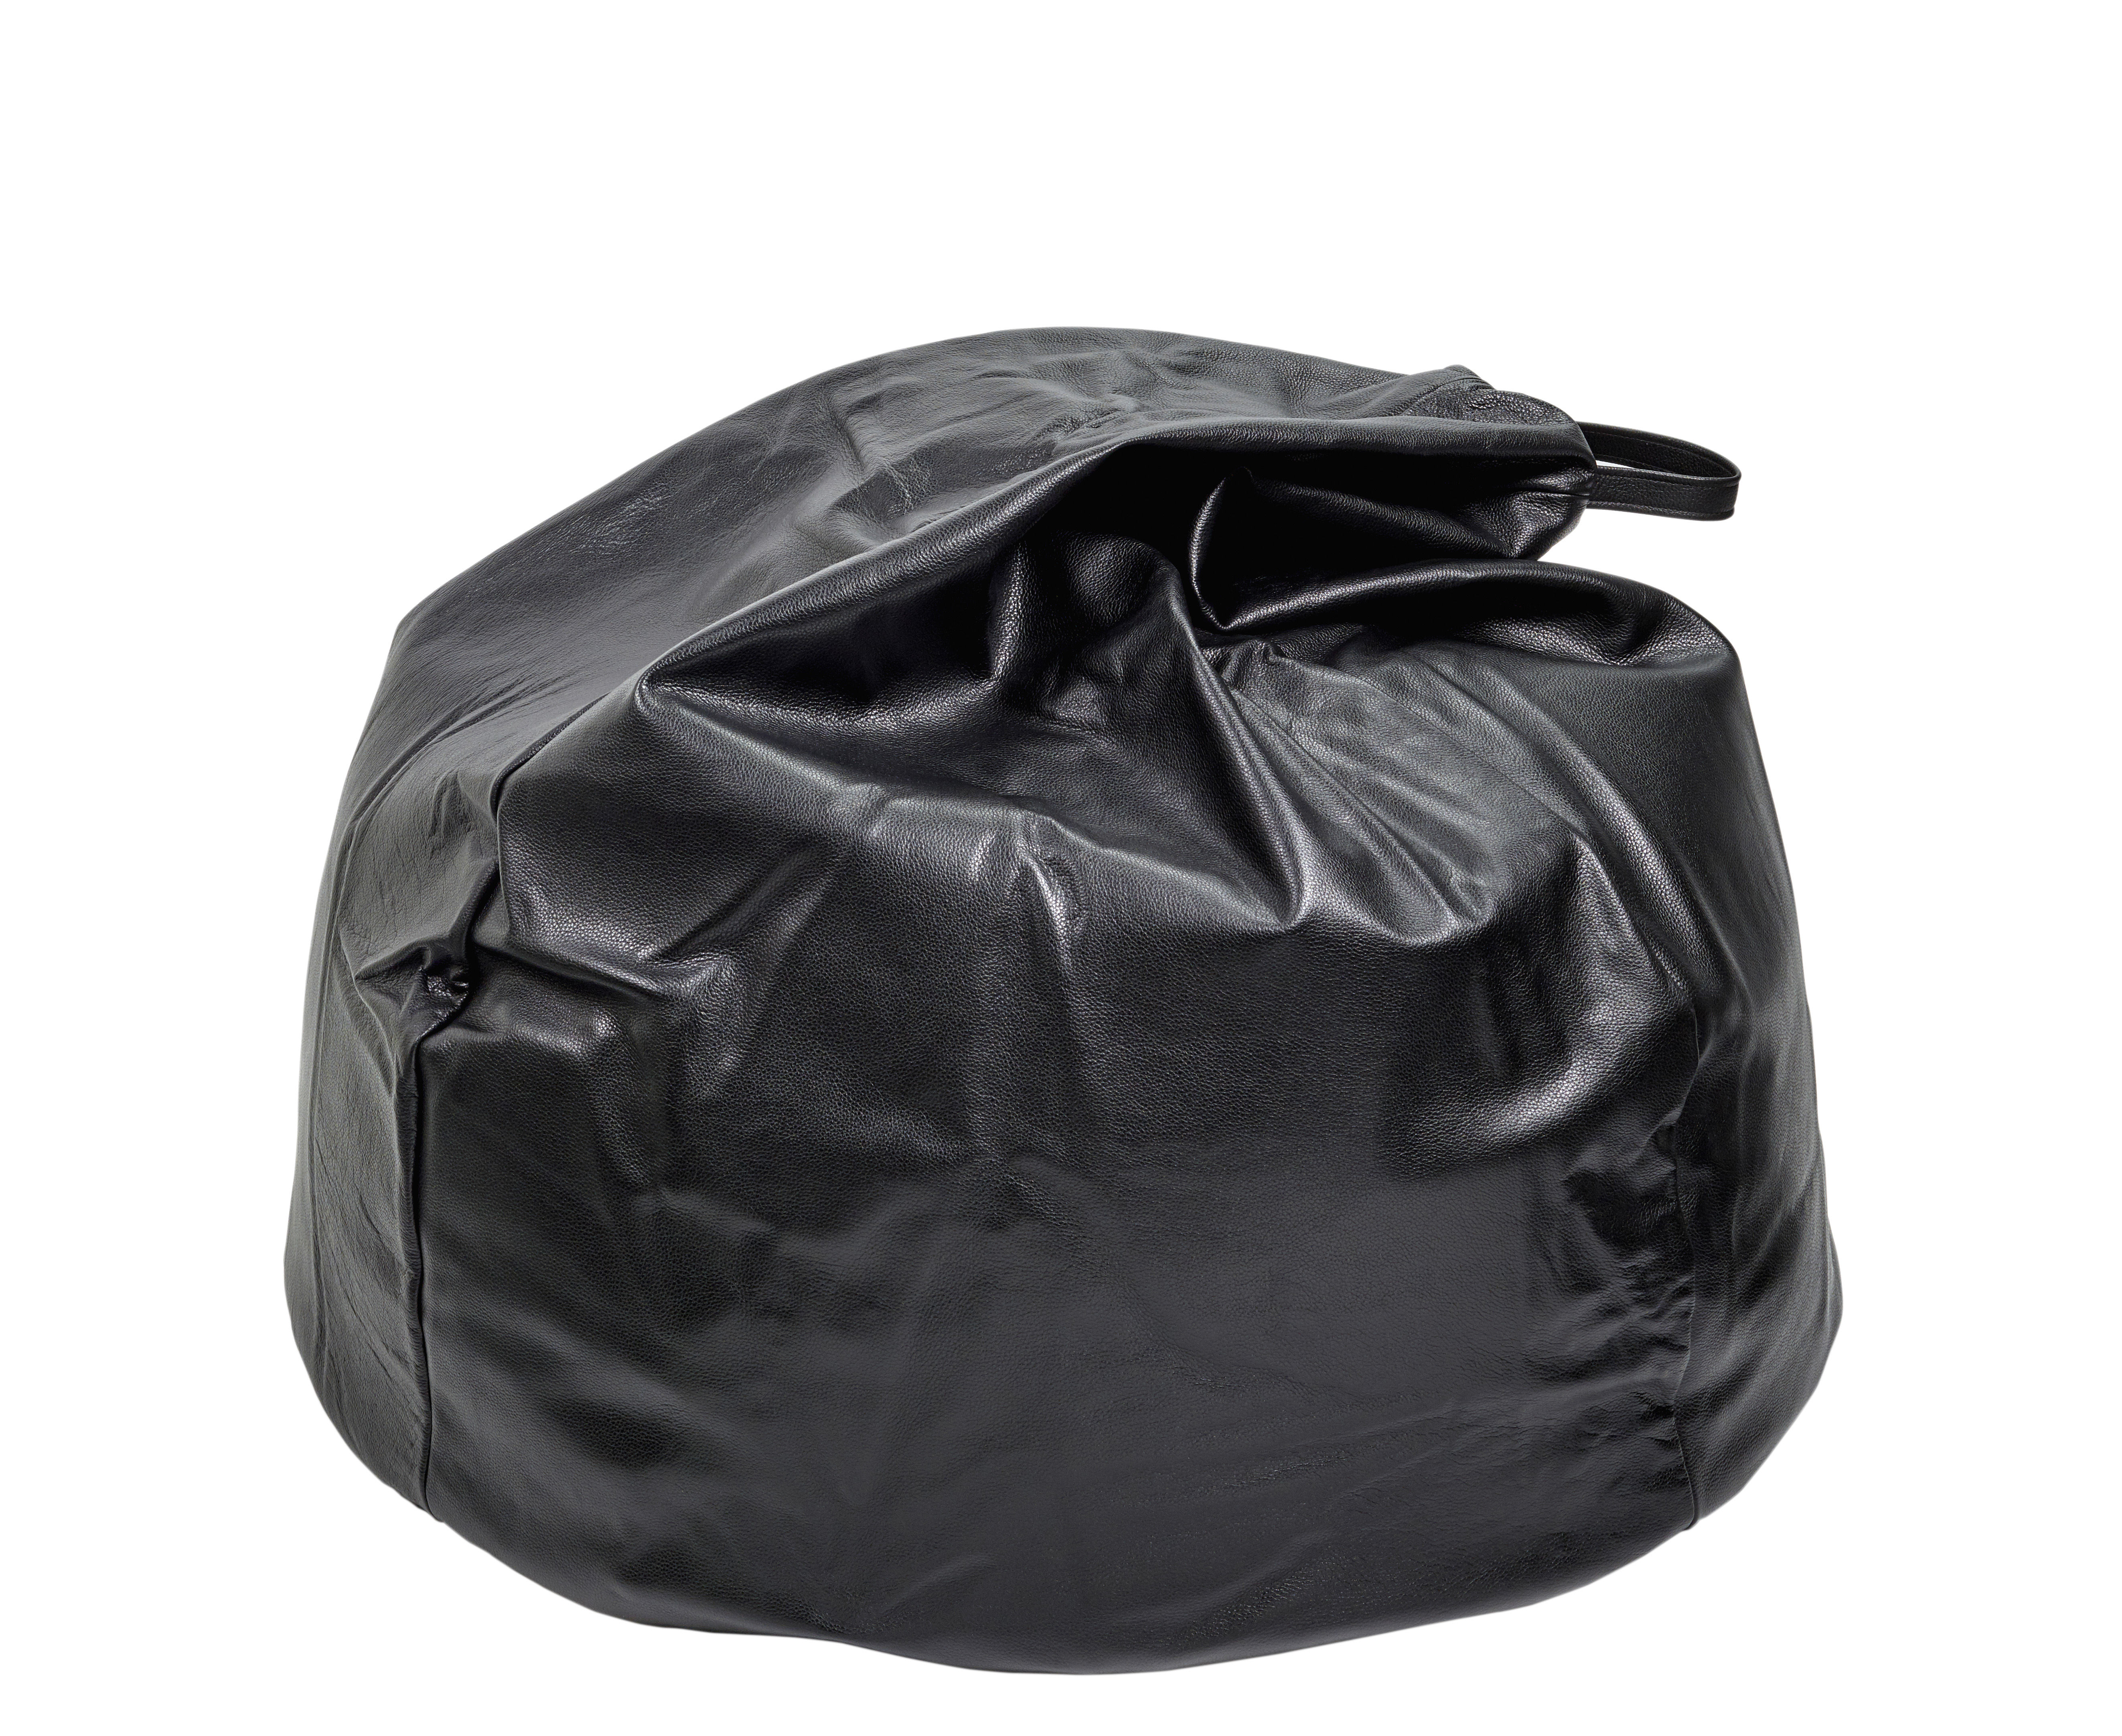 Furniture - Poufs & Floor Cushions - Sitbag Pouf - / Leather - Ø 90 cm by Serax - Black - Leather